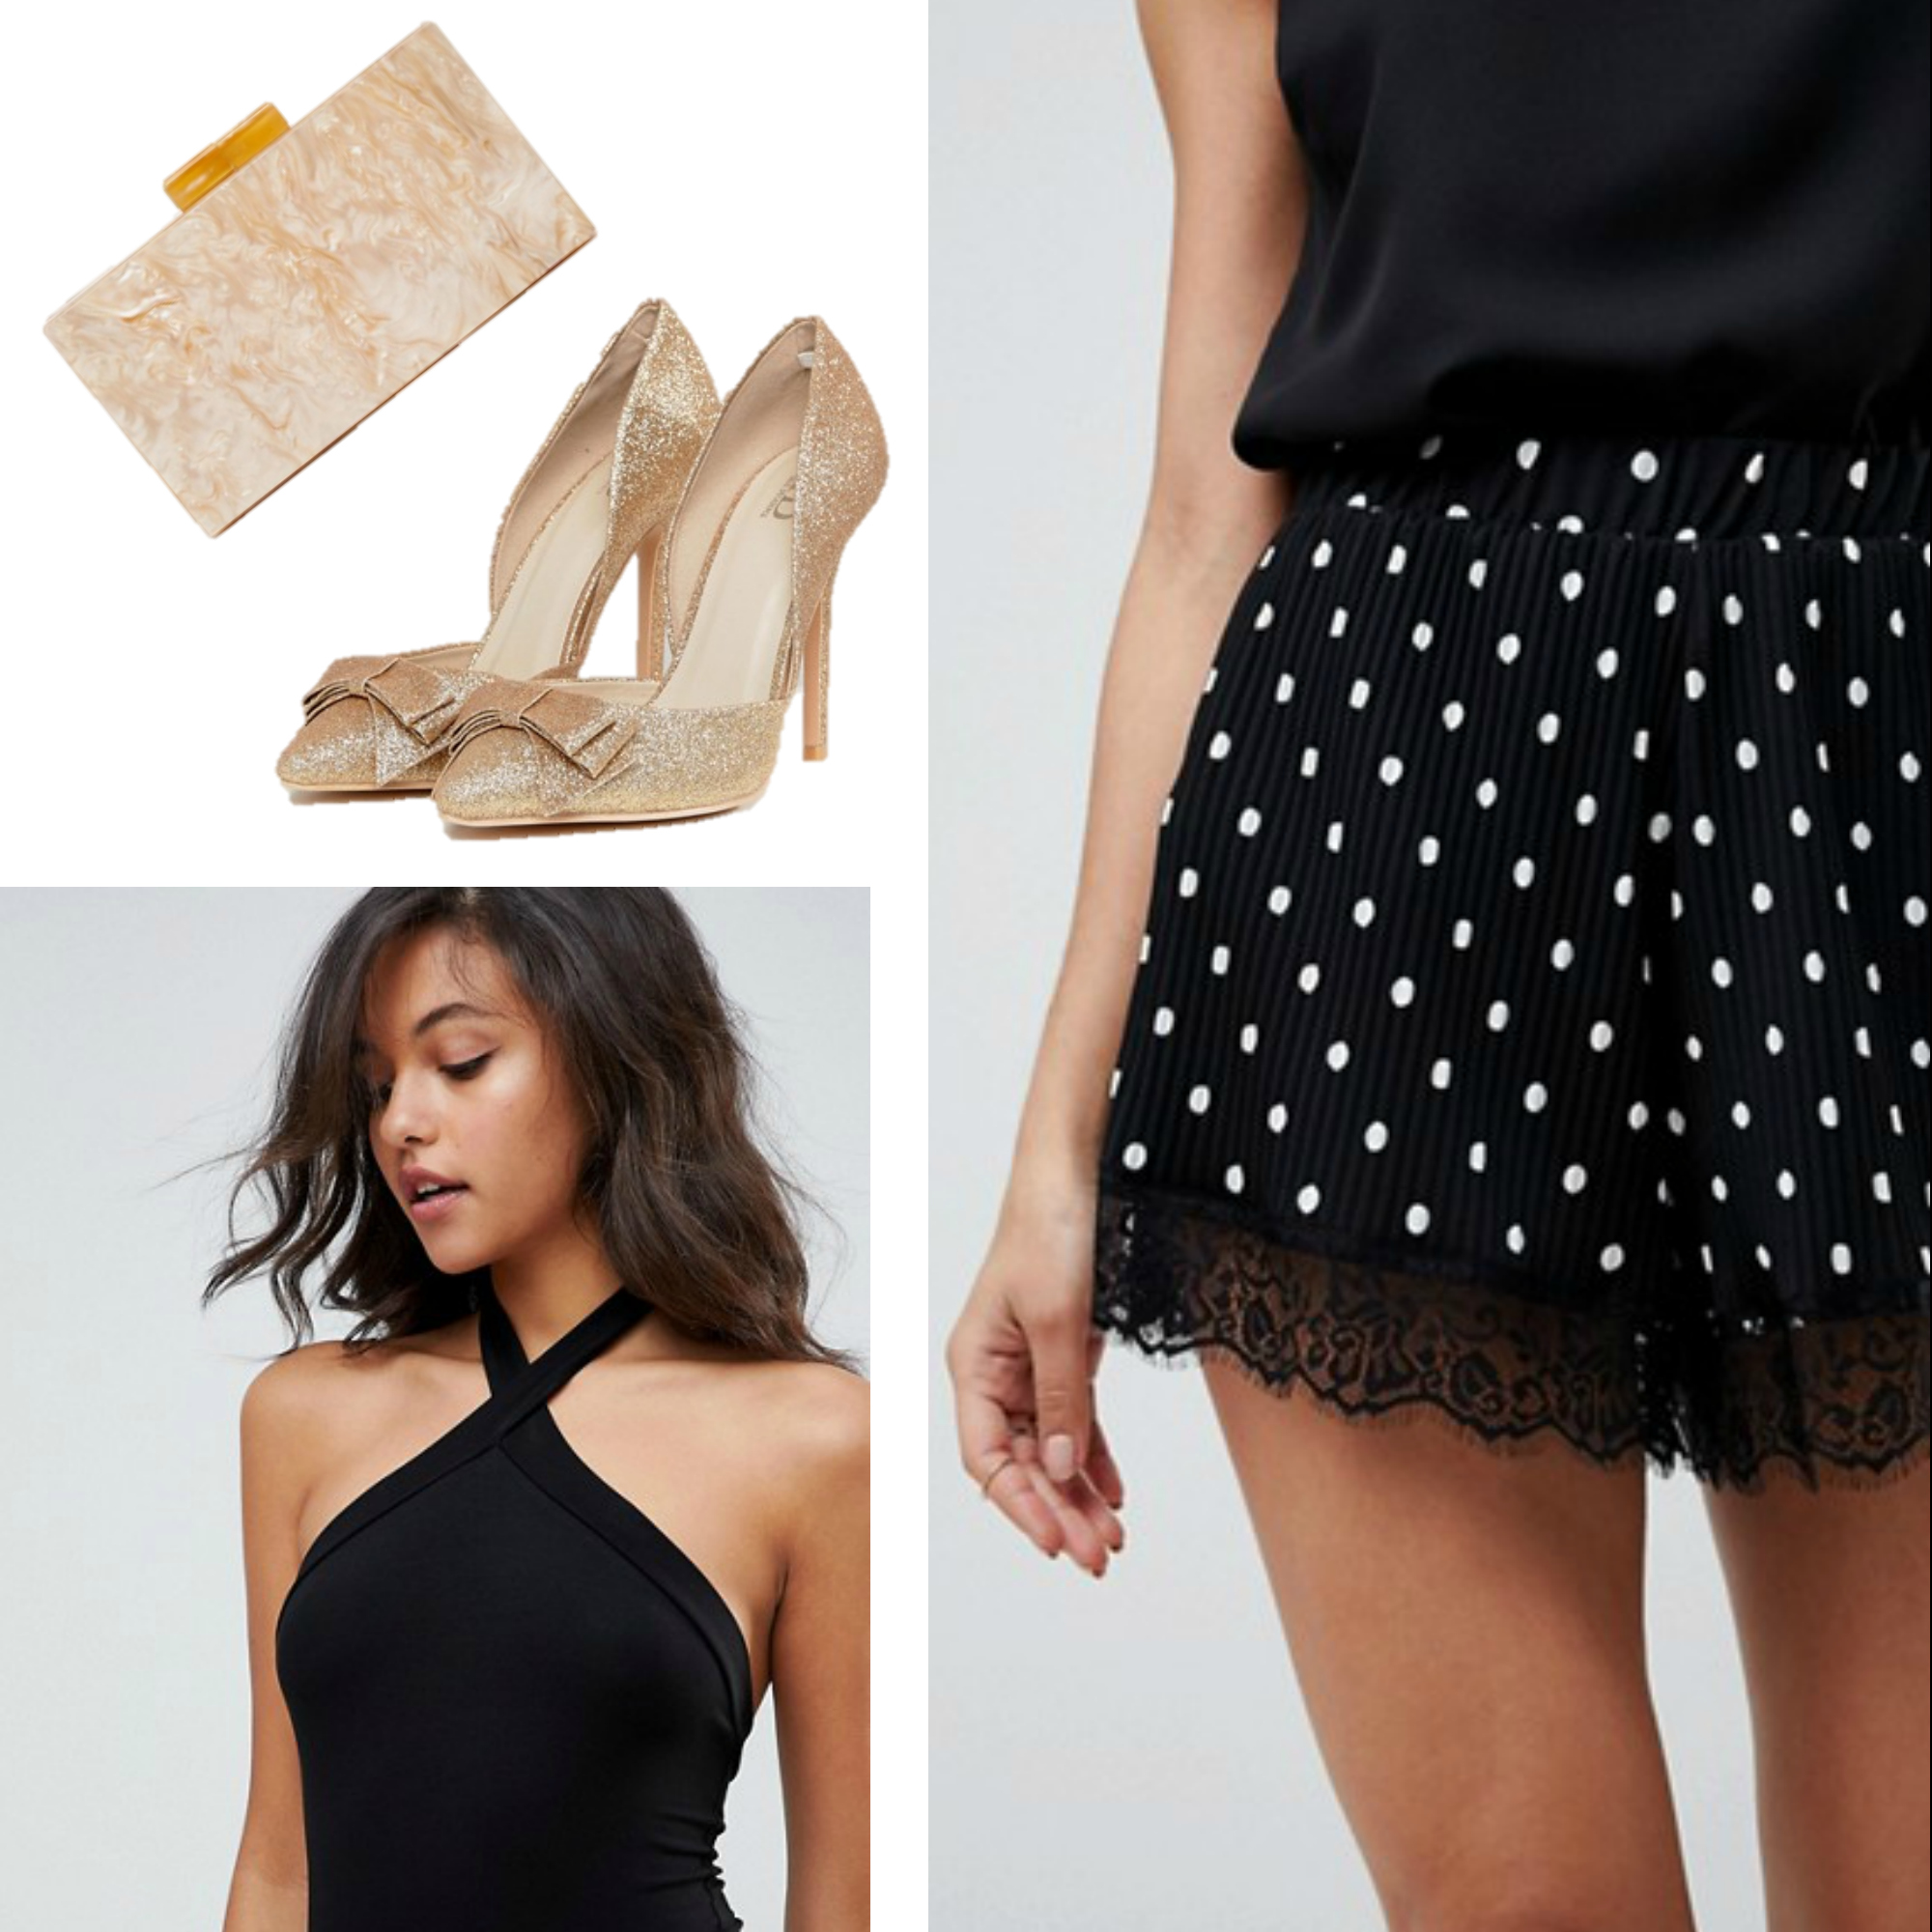 New Years Eve Outfit Idea Under $150  Budget Friendly Party Outfit - Dress Shorts with Halter Neck Top and Metallic Accessories